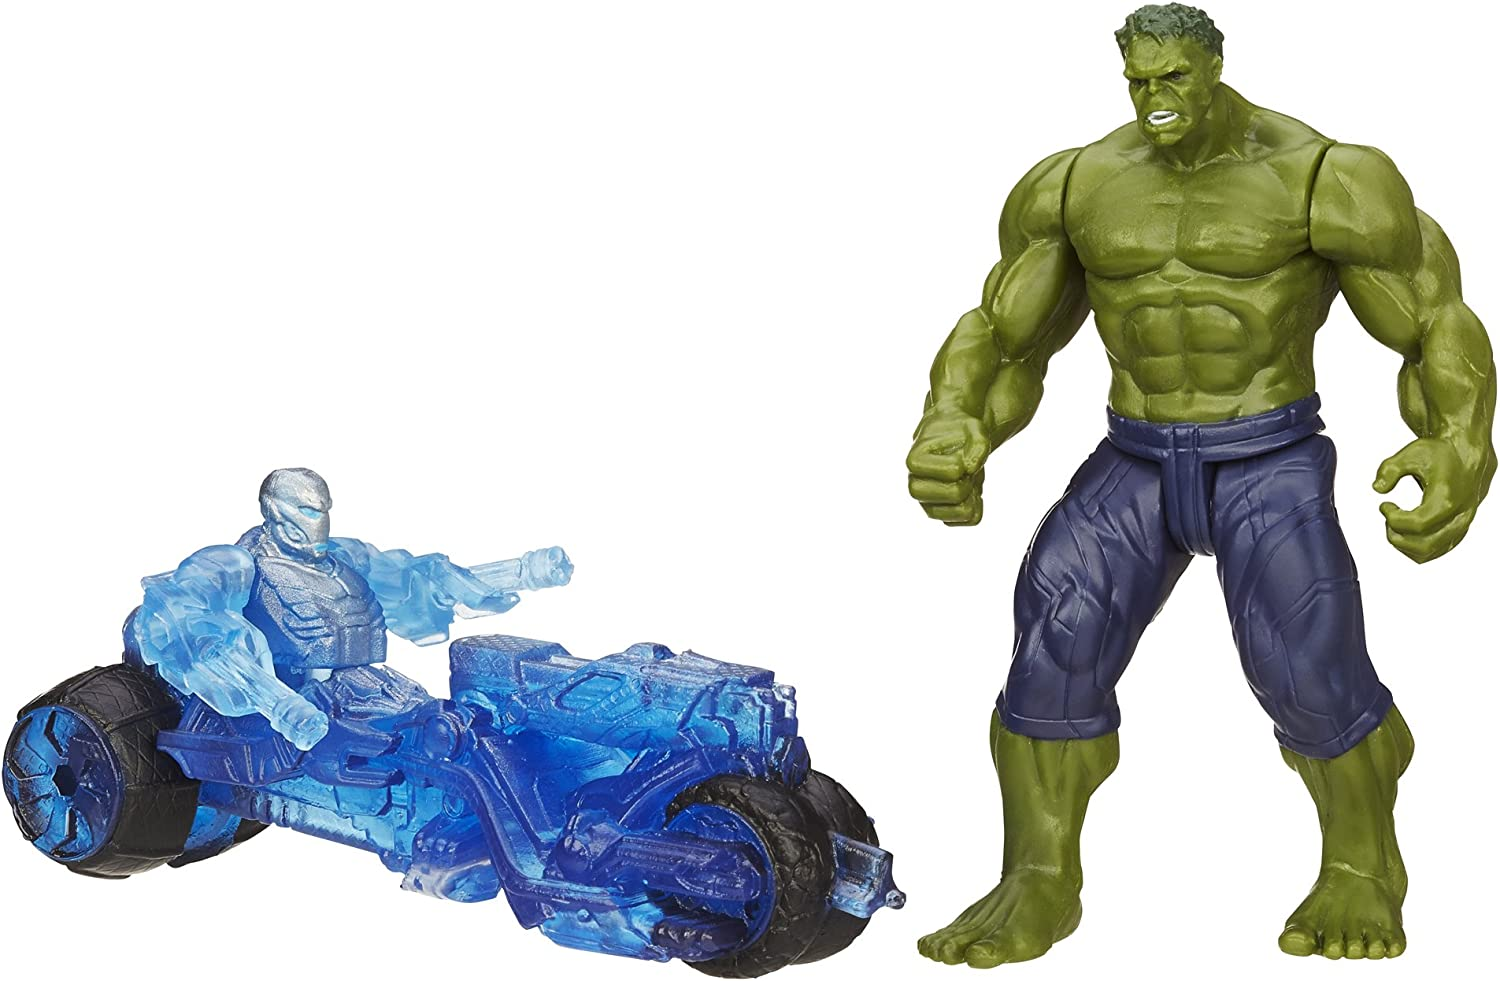 Marvel Avengers Age of Ultron Hulk Vs. Sub-Ultron 003 Figure Pack: Amazon.es: Juguetes y juegos